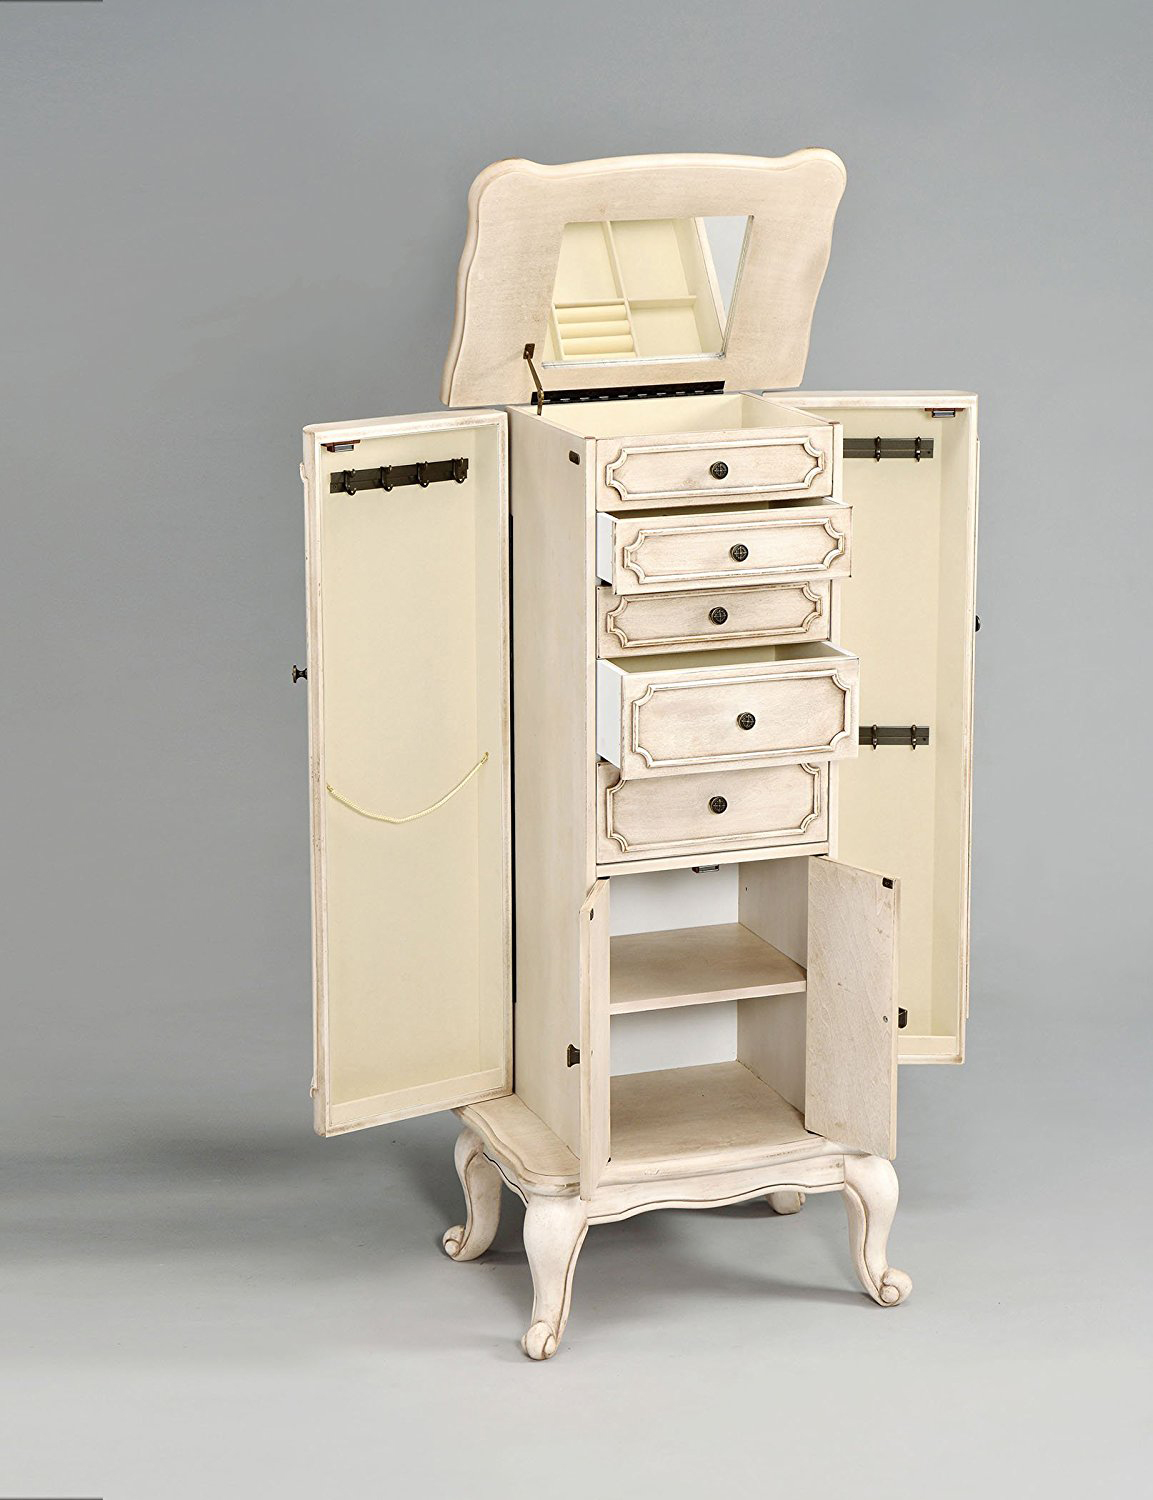 Retro White Wooden Floor Standing Cabinet Shaped Jewelry Armoire